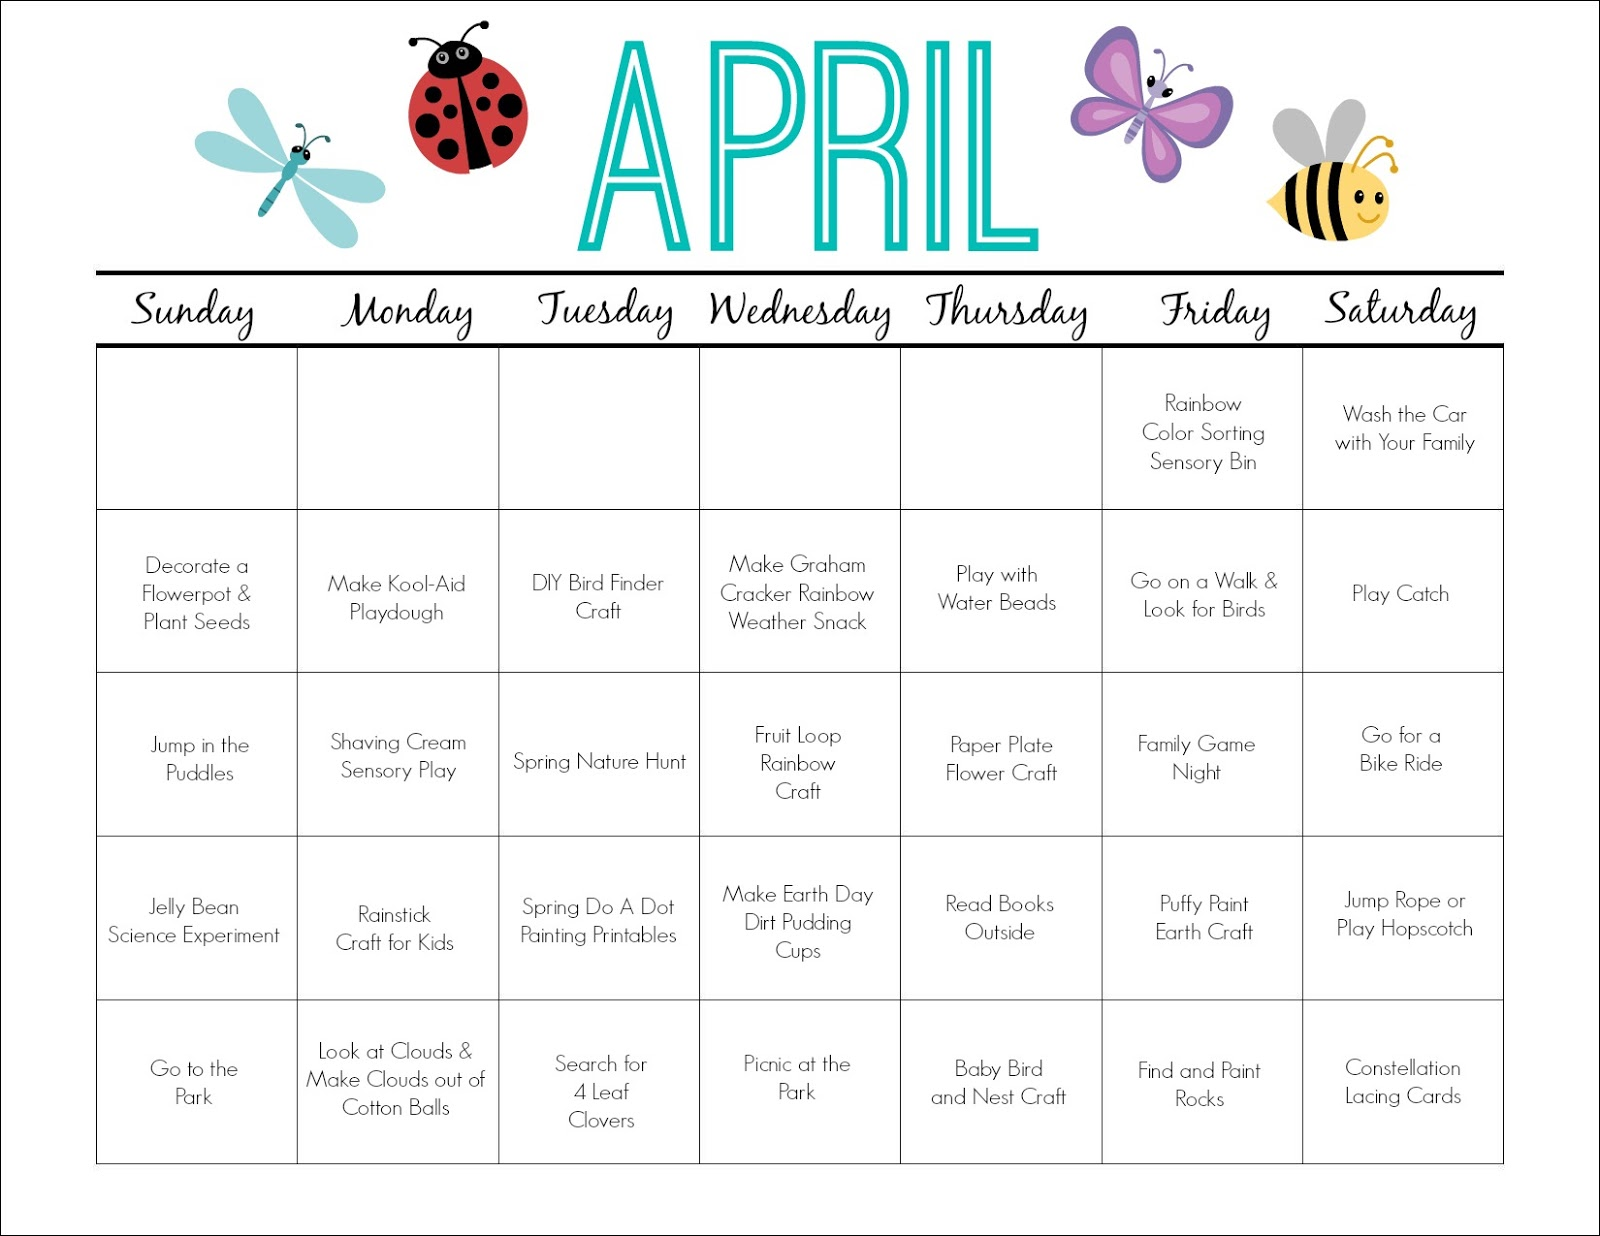 April Calendar Picture Ideas : Printable activity calendar for kids free from